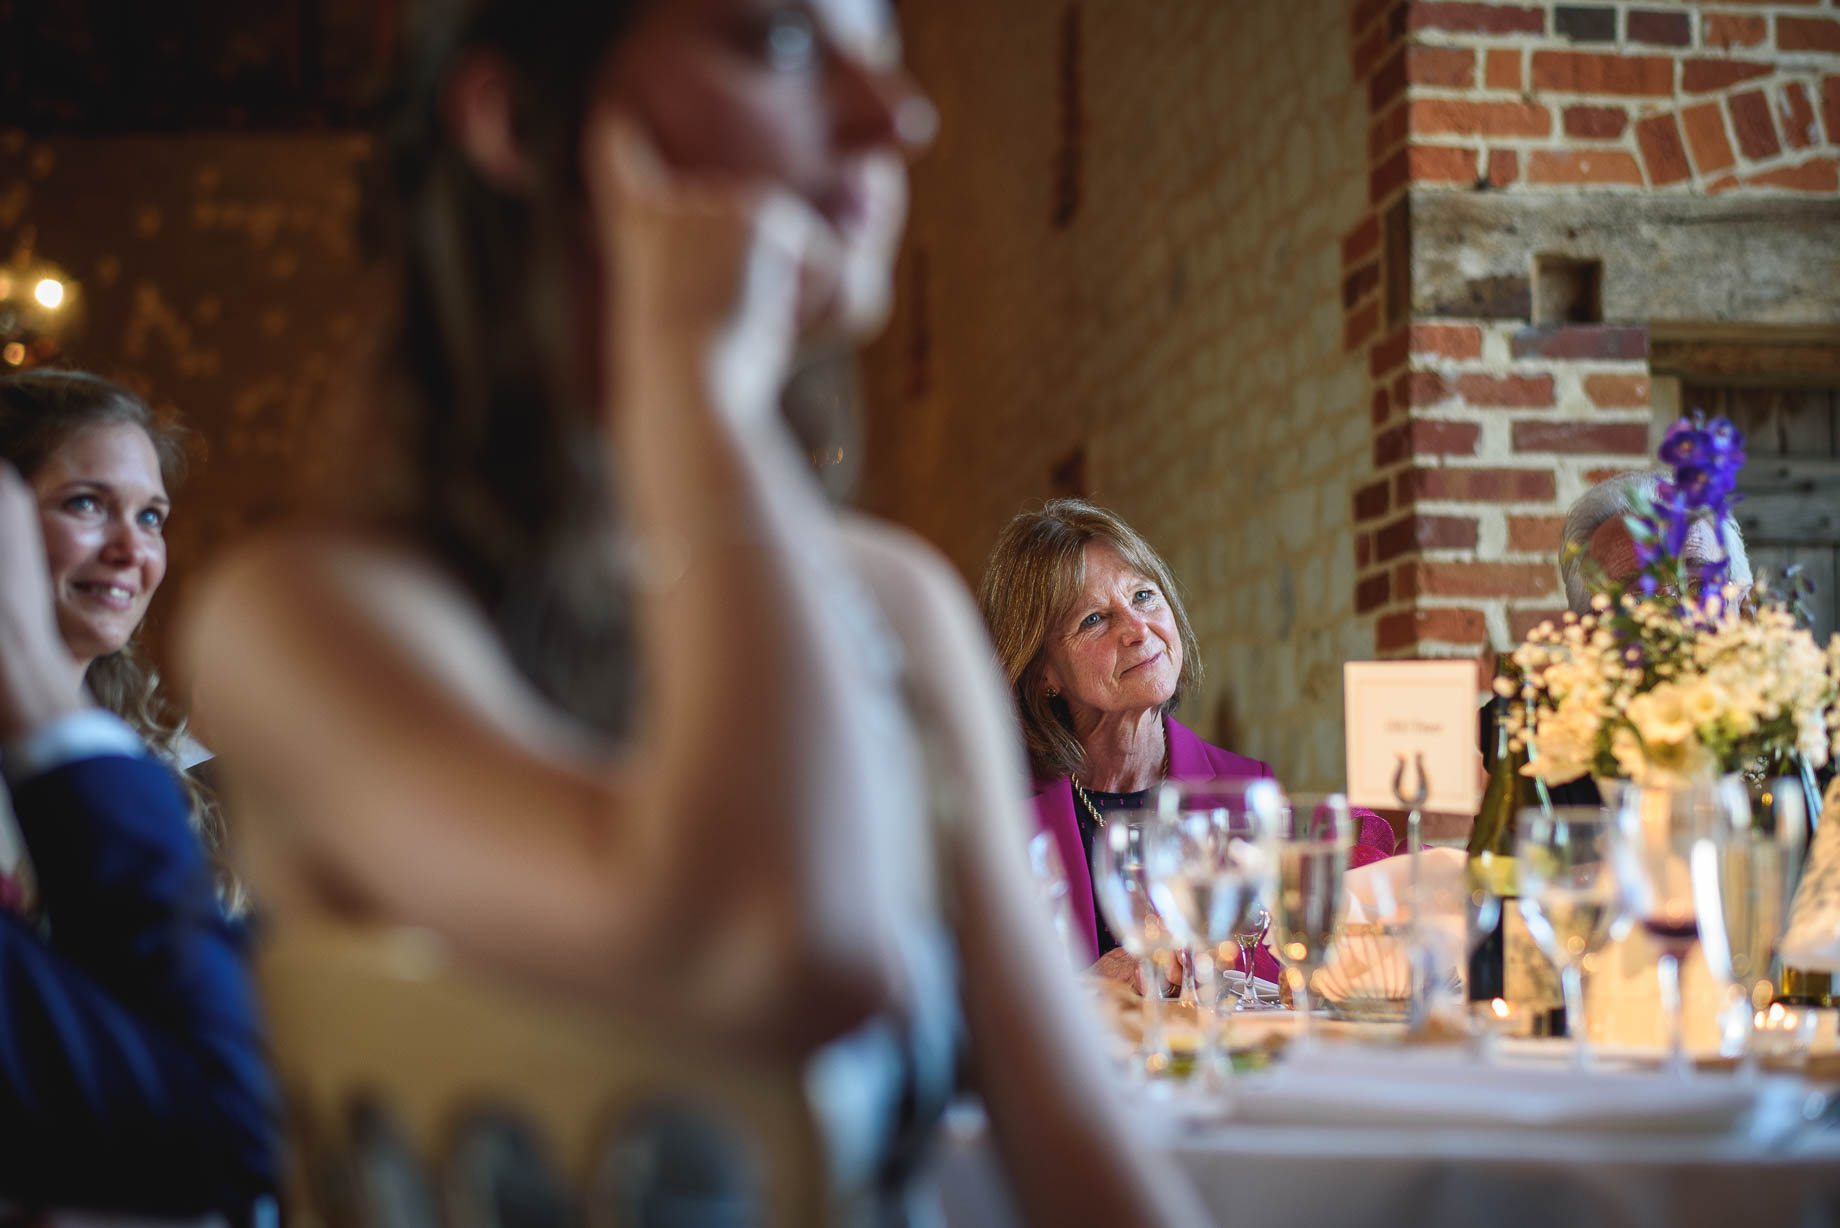 Bury Court Barn wedding photography by Guy Collier - Heather and Pat (141 of 170)